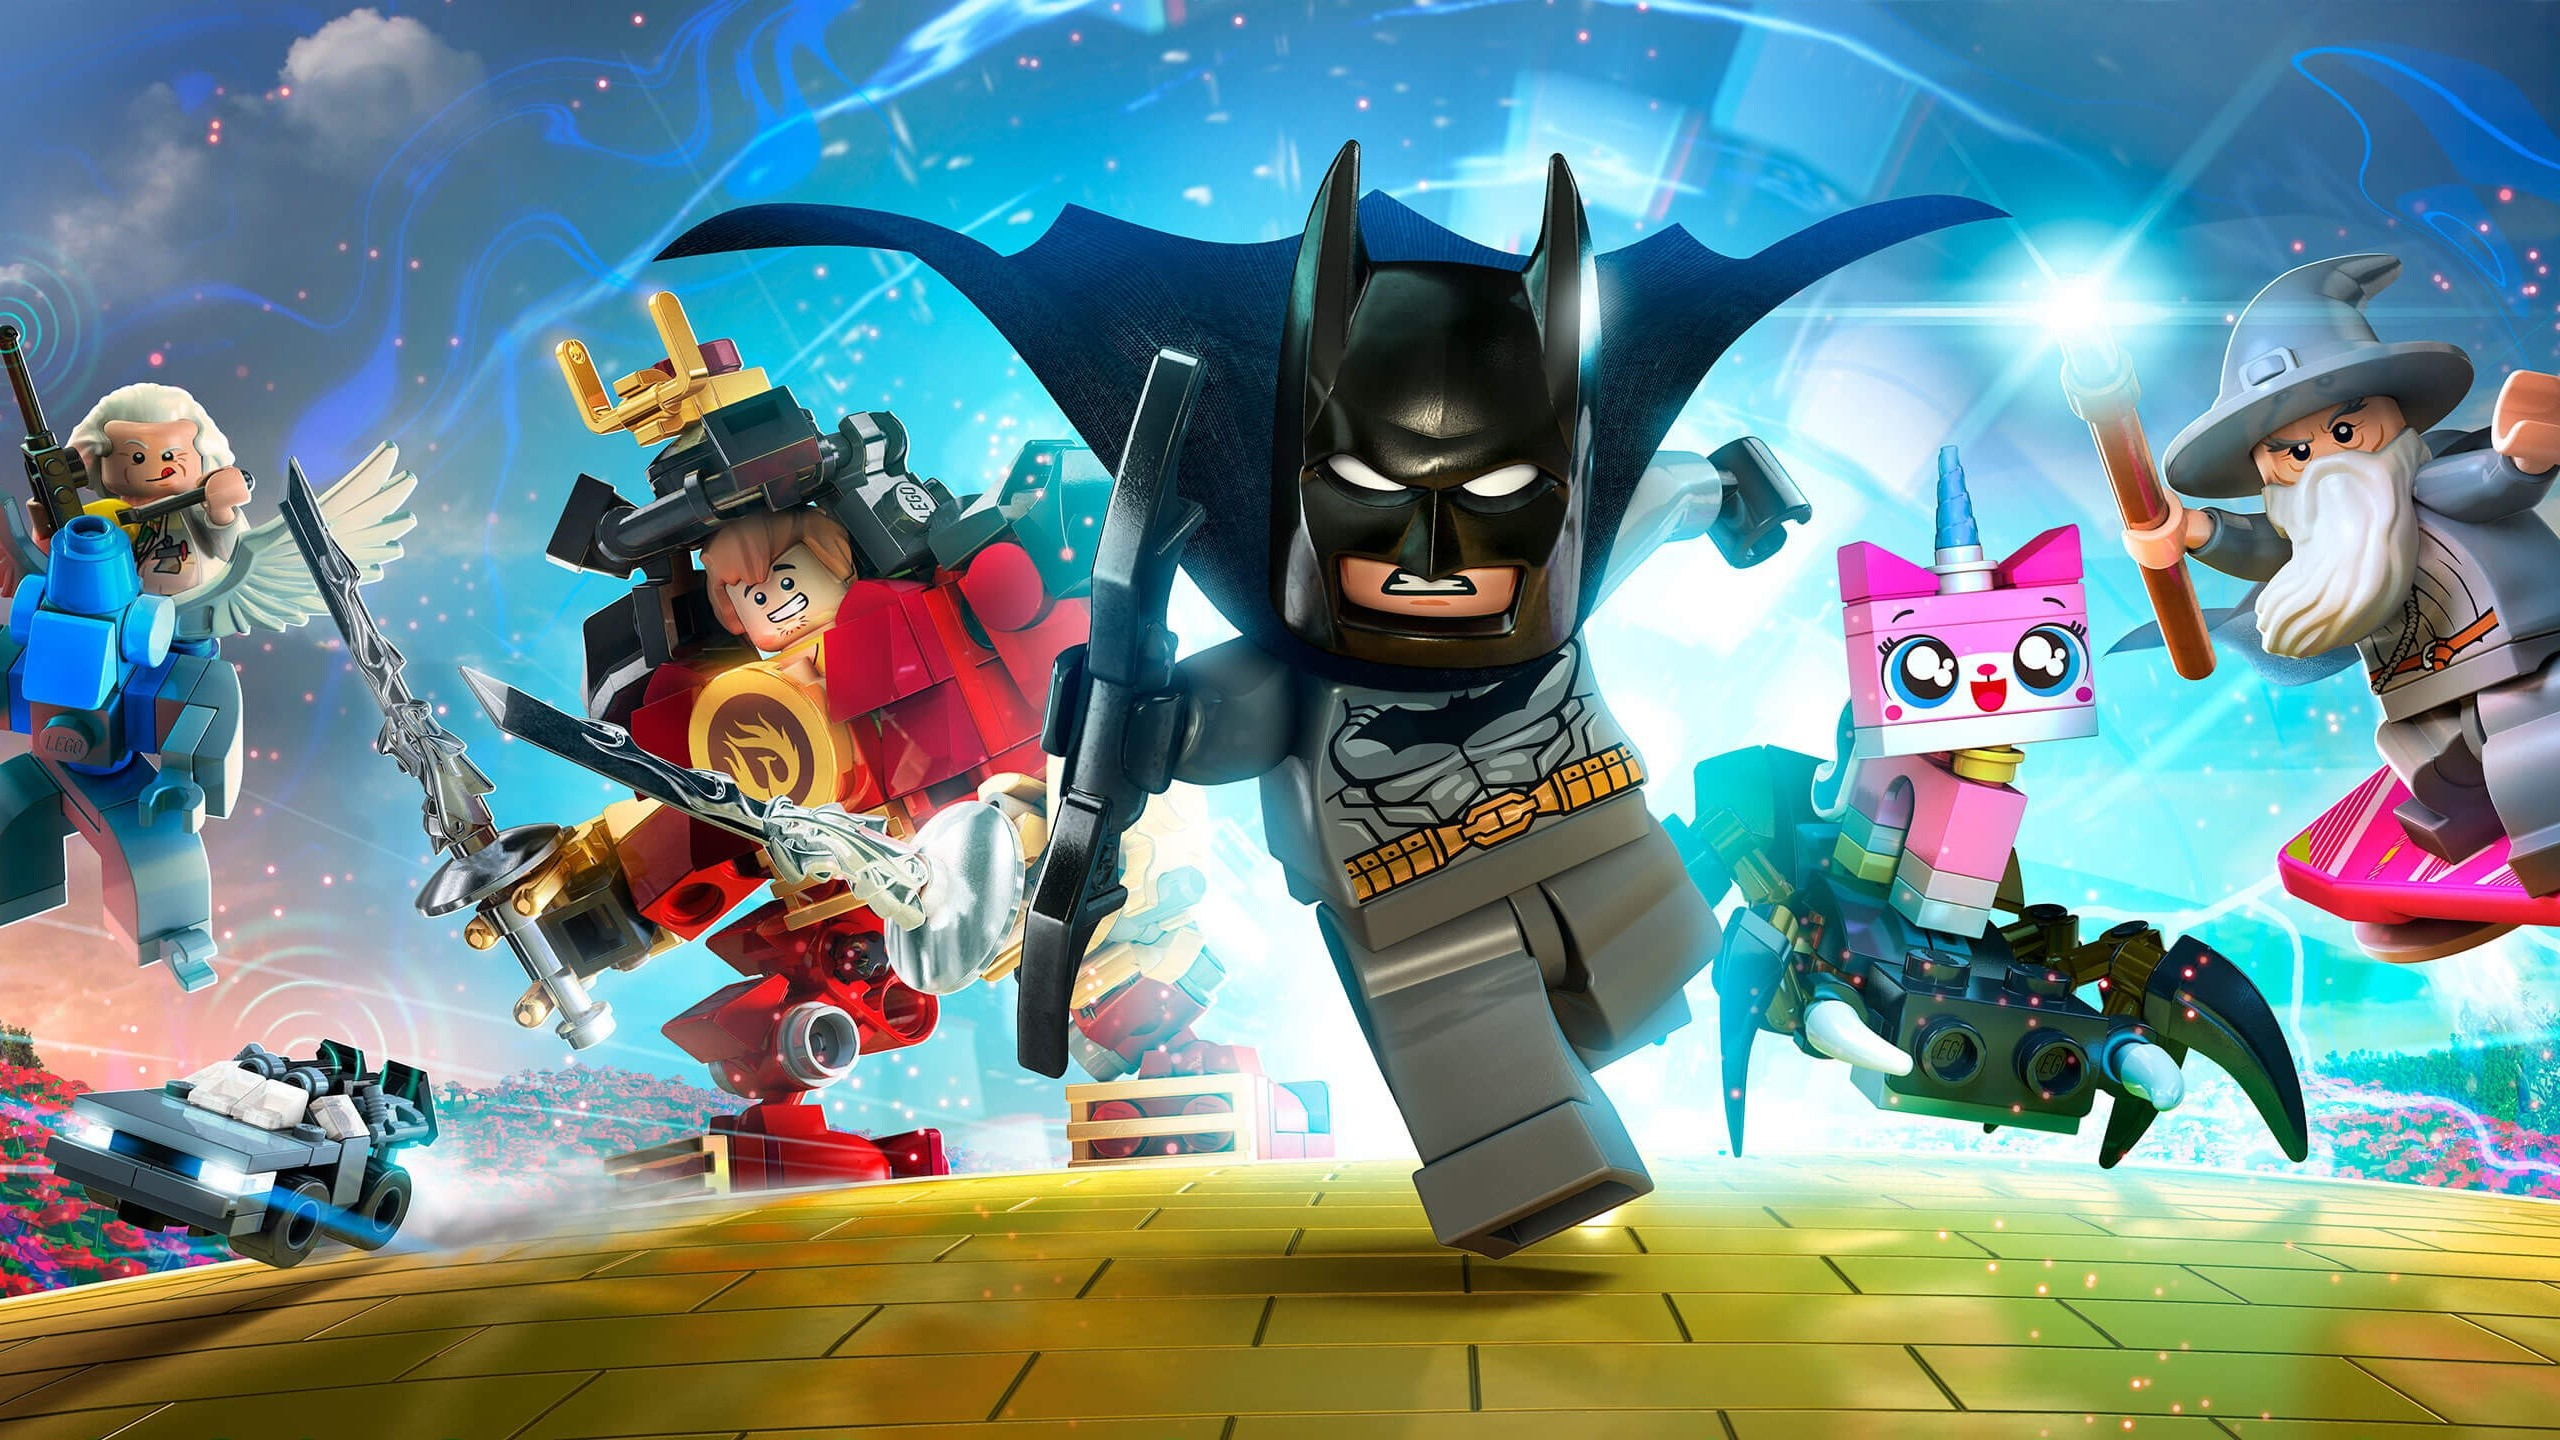 Wallpaper Characters of the game Lego Dimensions